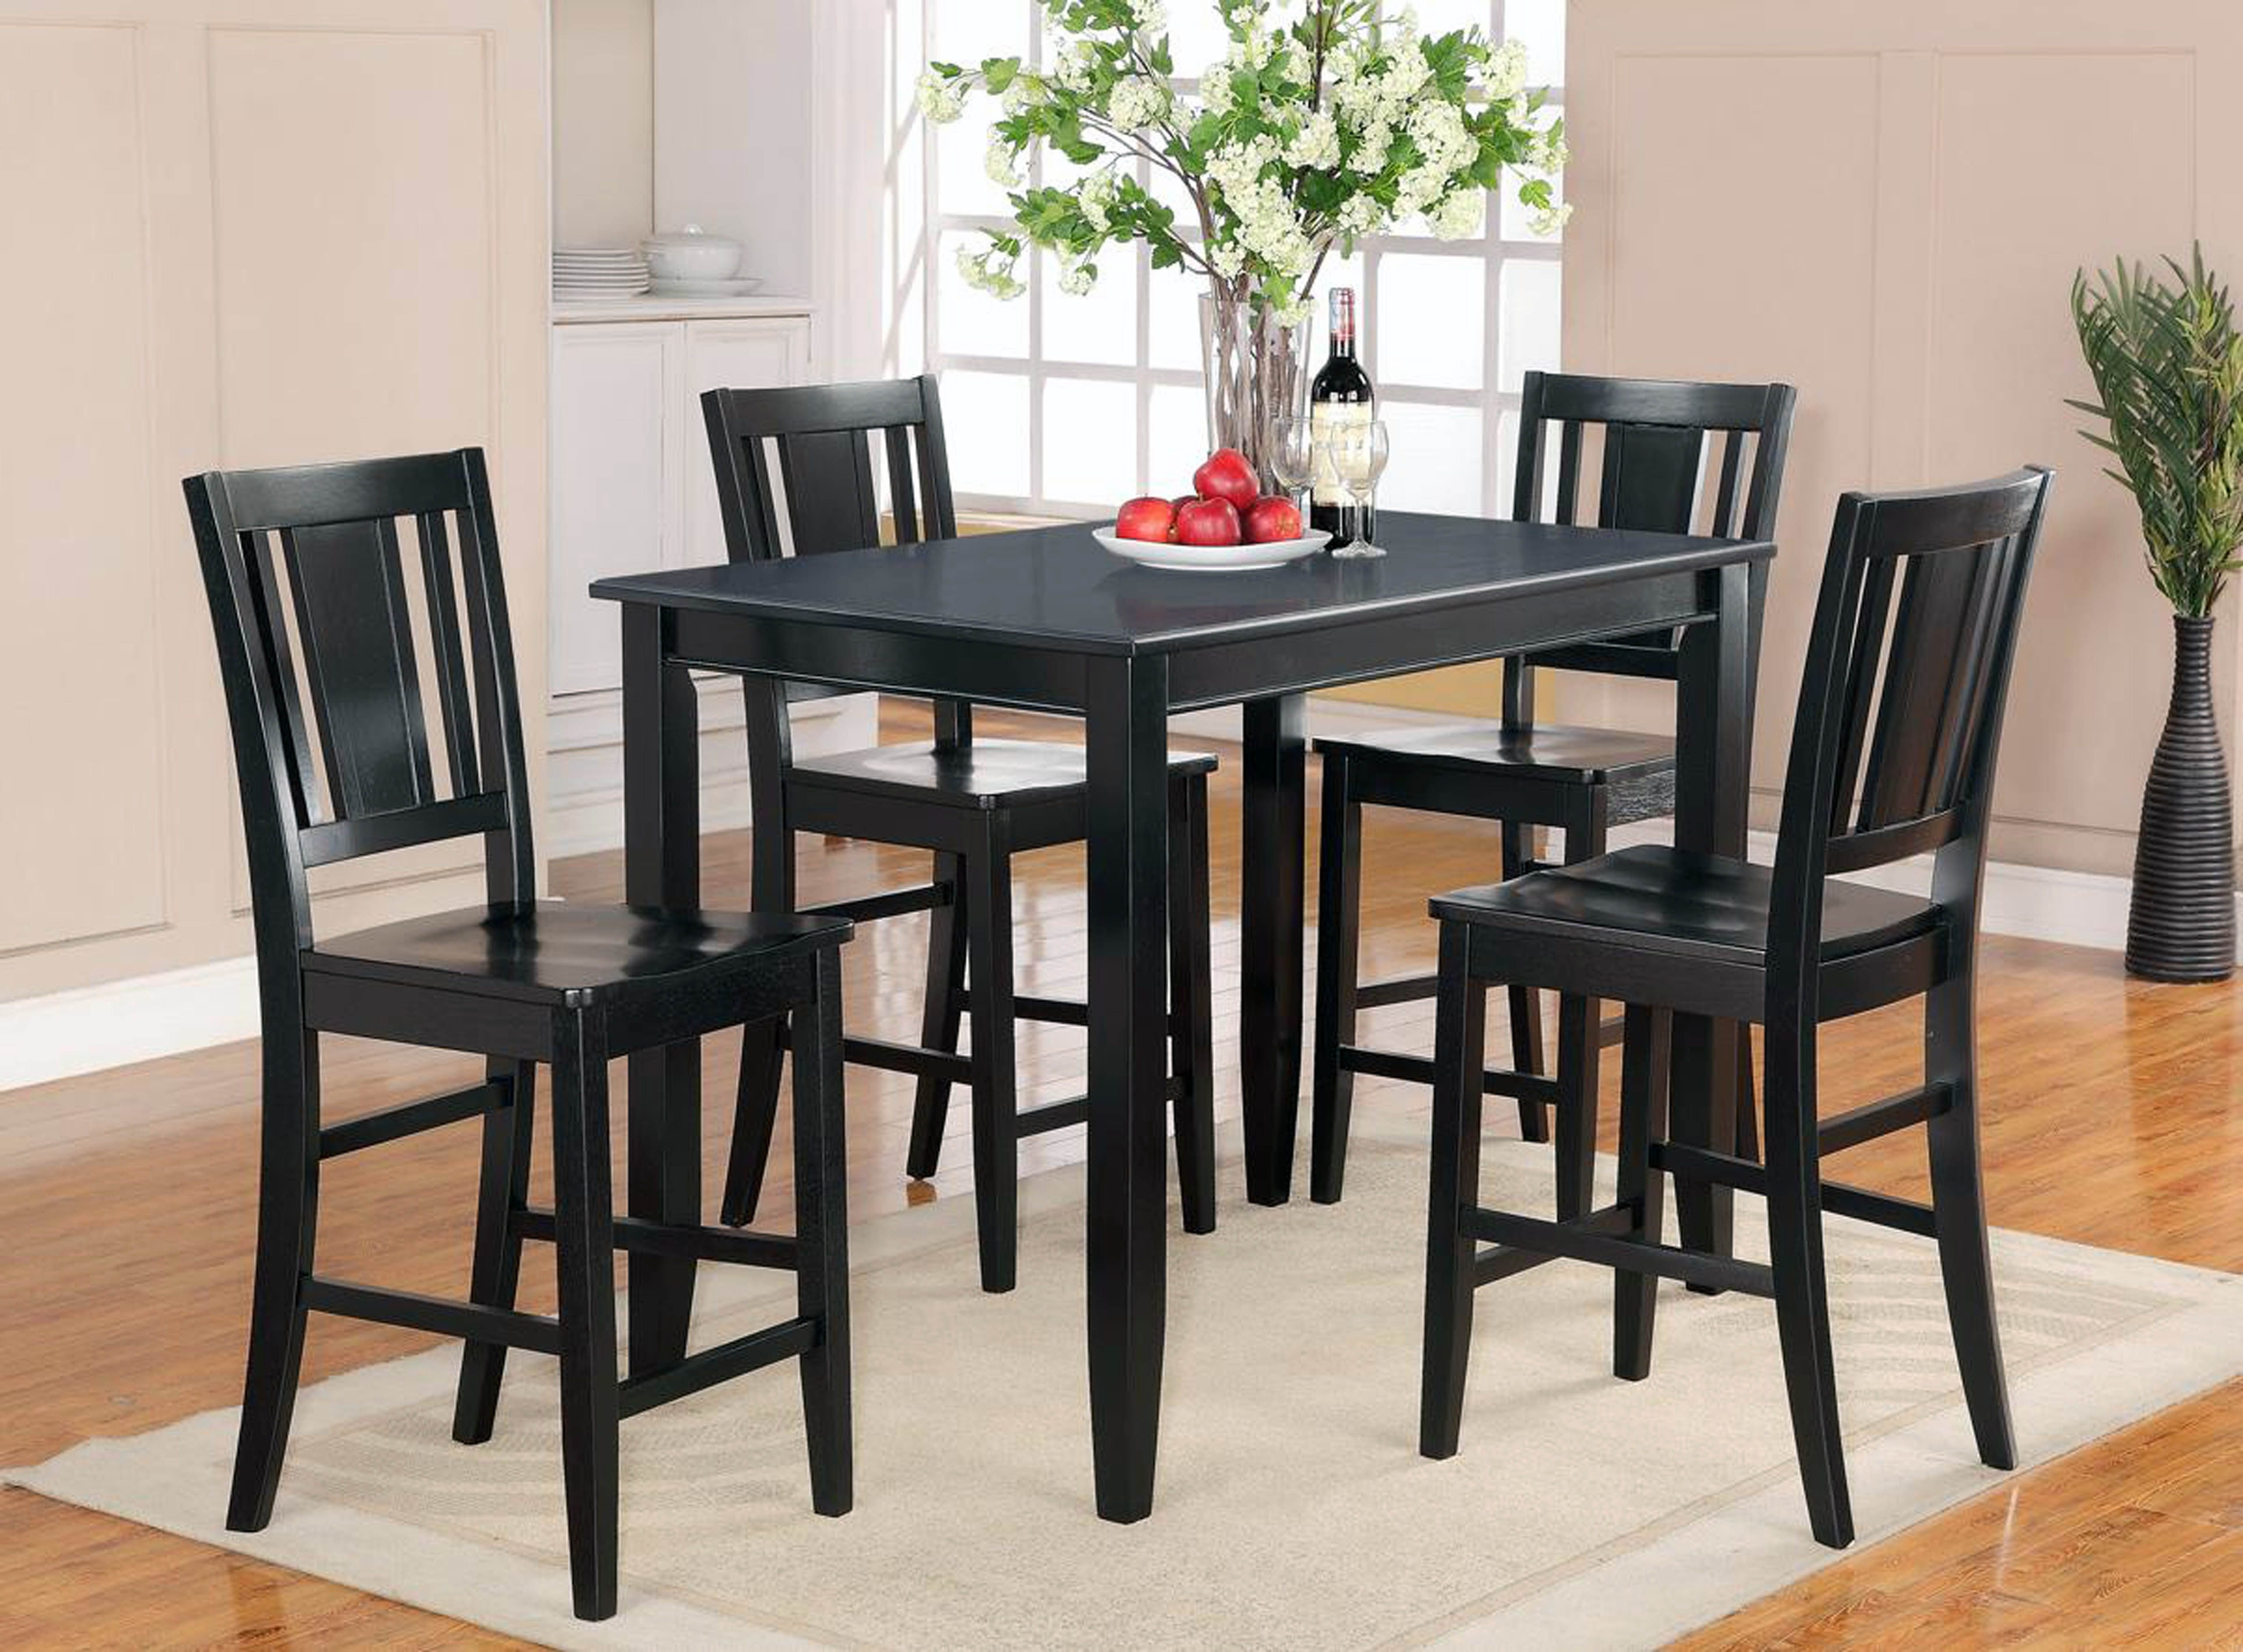 Wooden Kitchen Table Round Dining With Leaf Counter Height Small For Best And Newest Small Dark Wood Dining Tables (View 14 of 25)